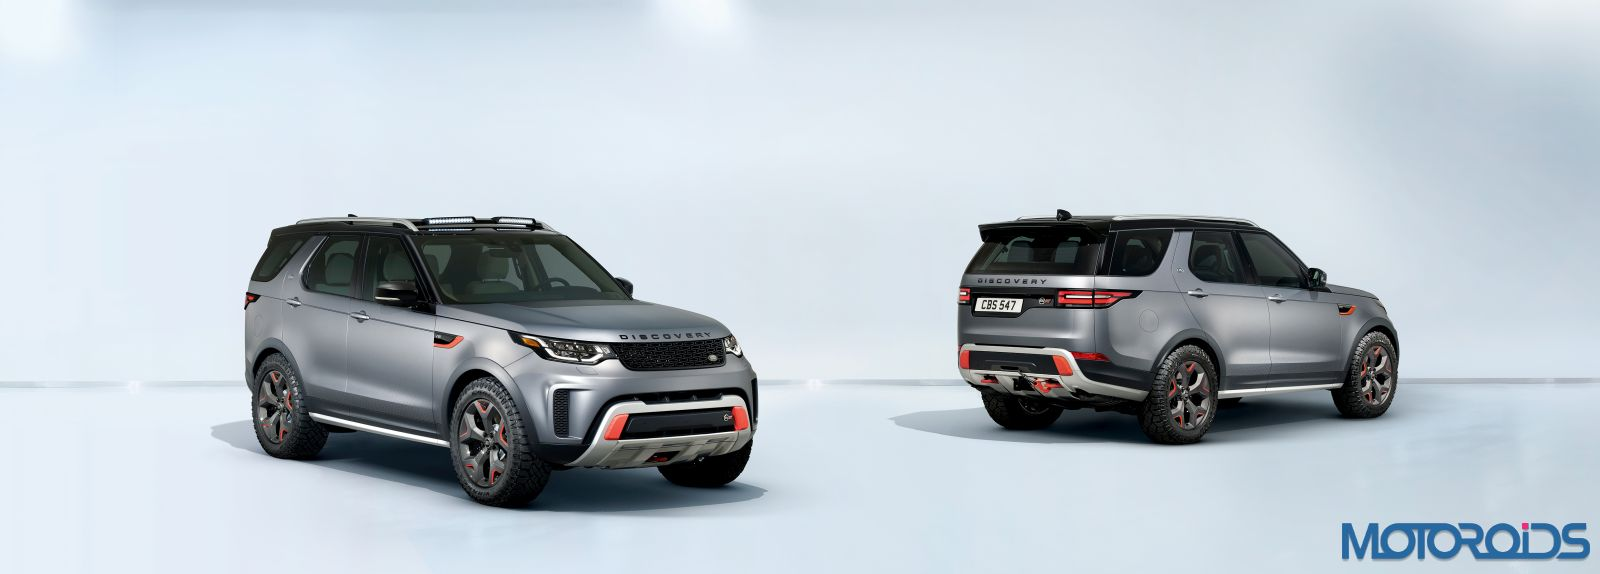 Land-Rover-Discovery-SVX-1